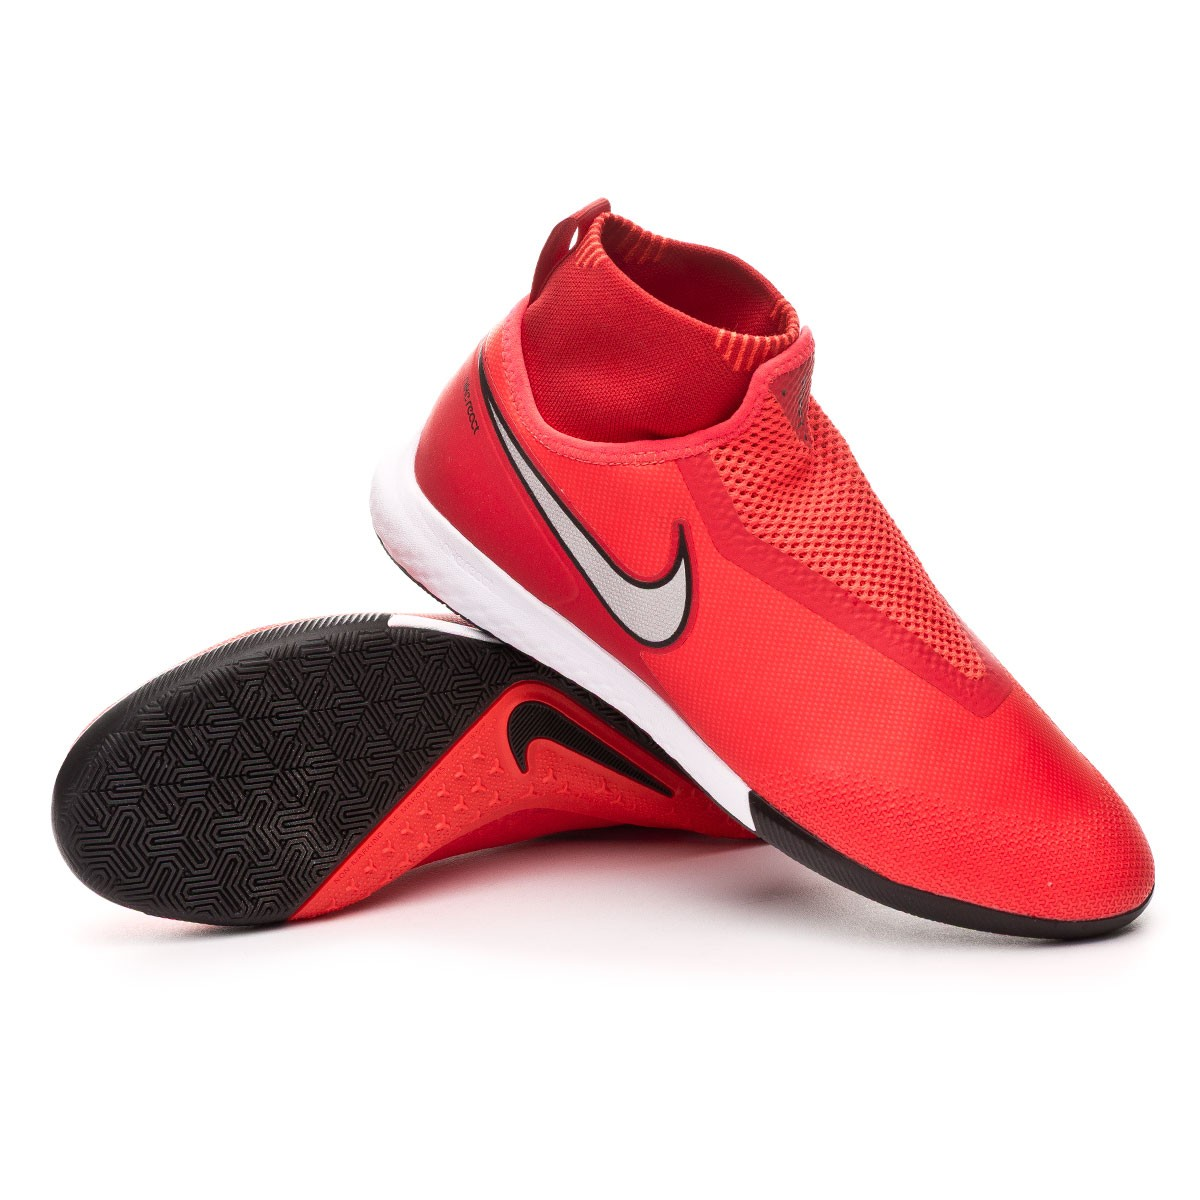 45cff2de1 Futsal Boot Nike React Phantom Vision Pro DF IC Bright crimson-Metallic  silver - Football store Fútbol Emotion